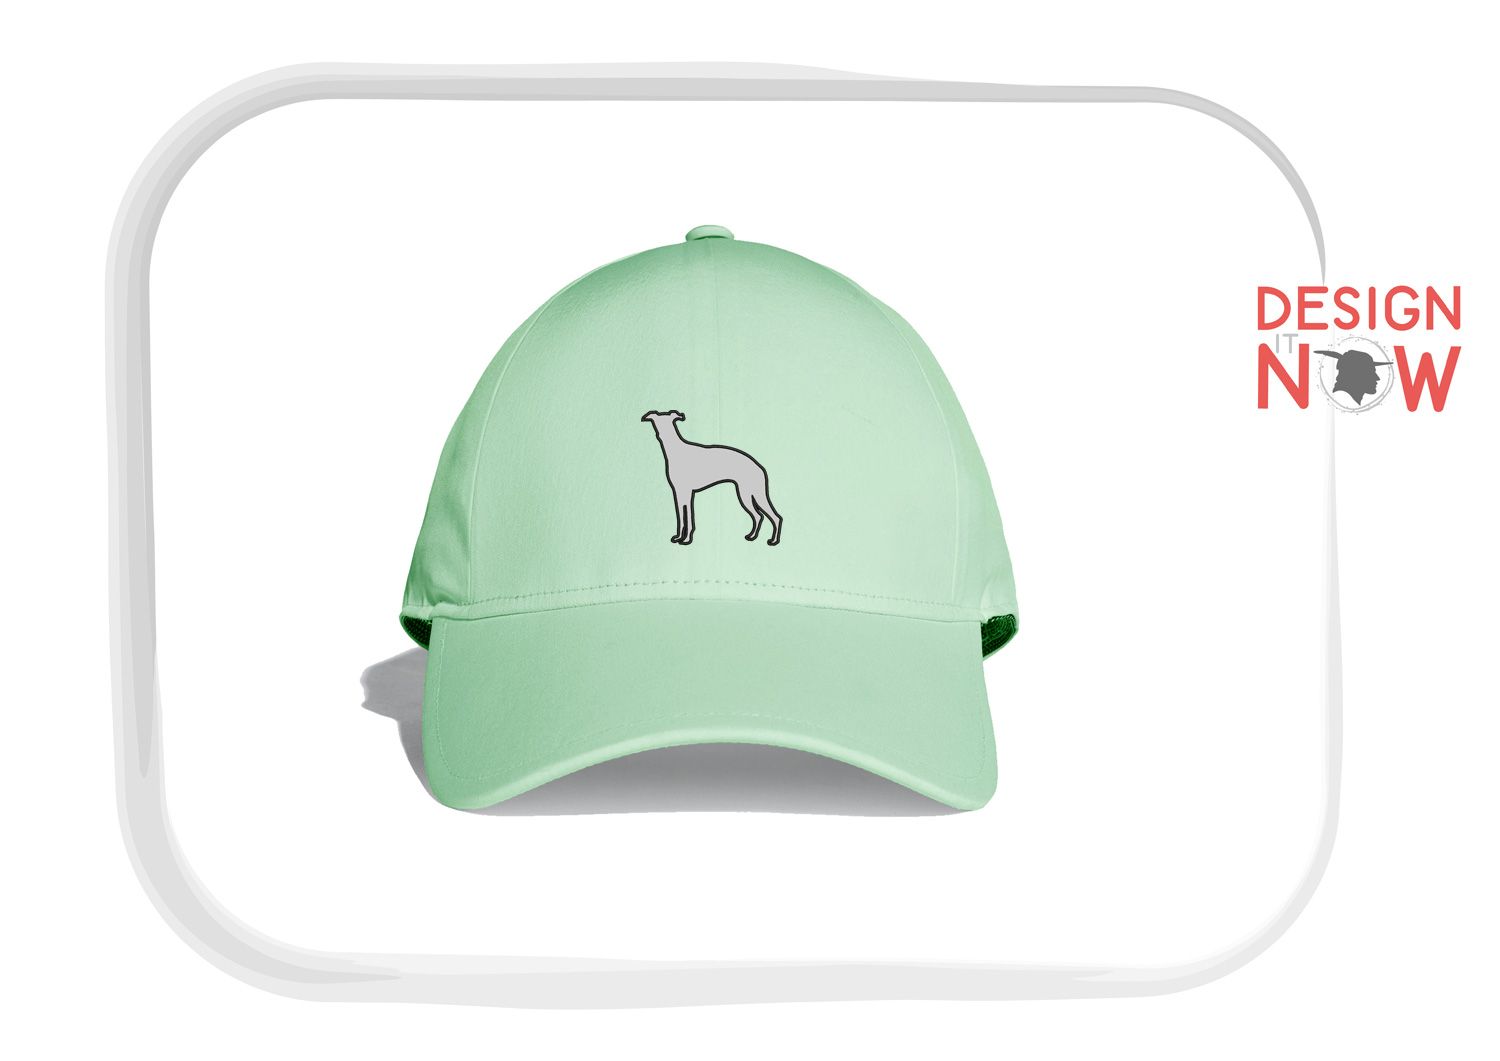 Whippet Dog Applique Design, Dog Embroidery Design example image 4